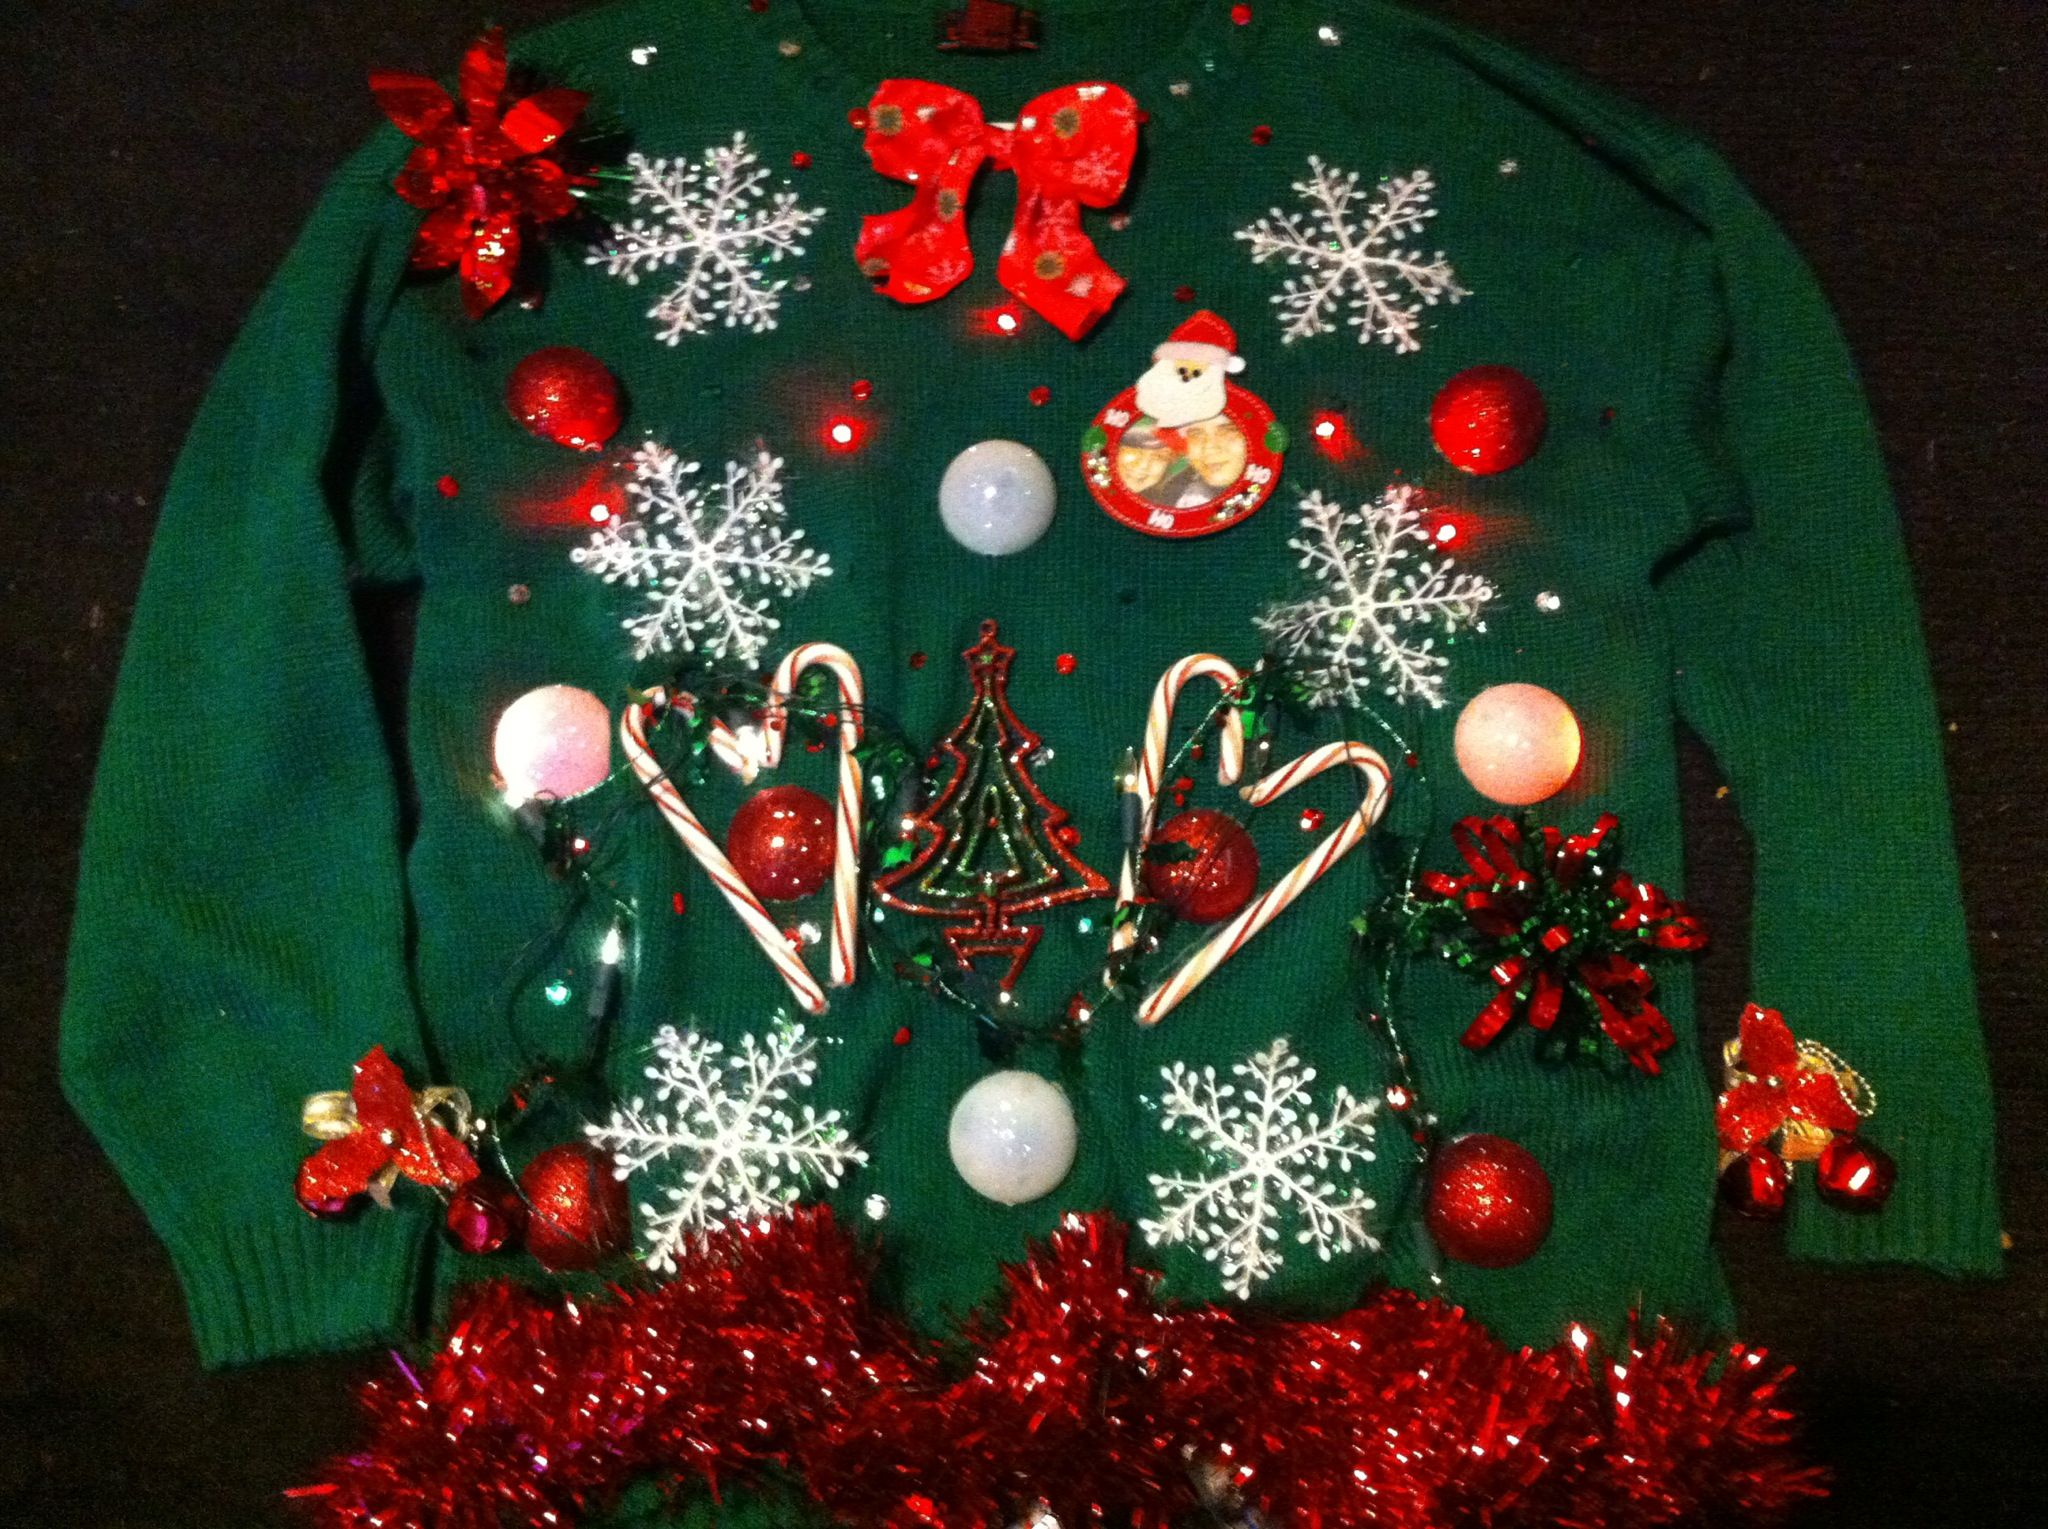 DIY UGLY CHRISTMAS SWEATER. All Items Were Bought At A